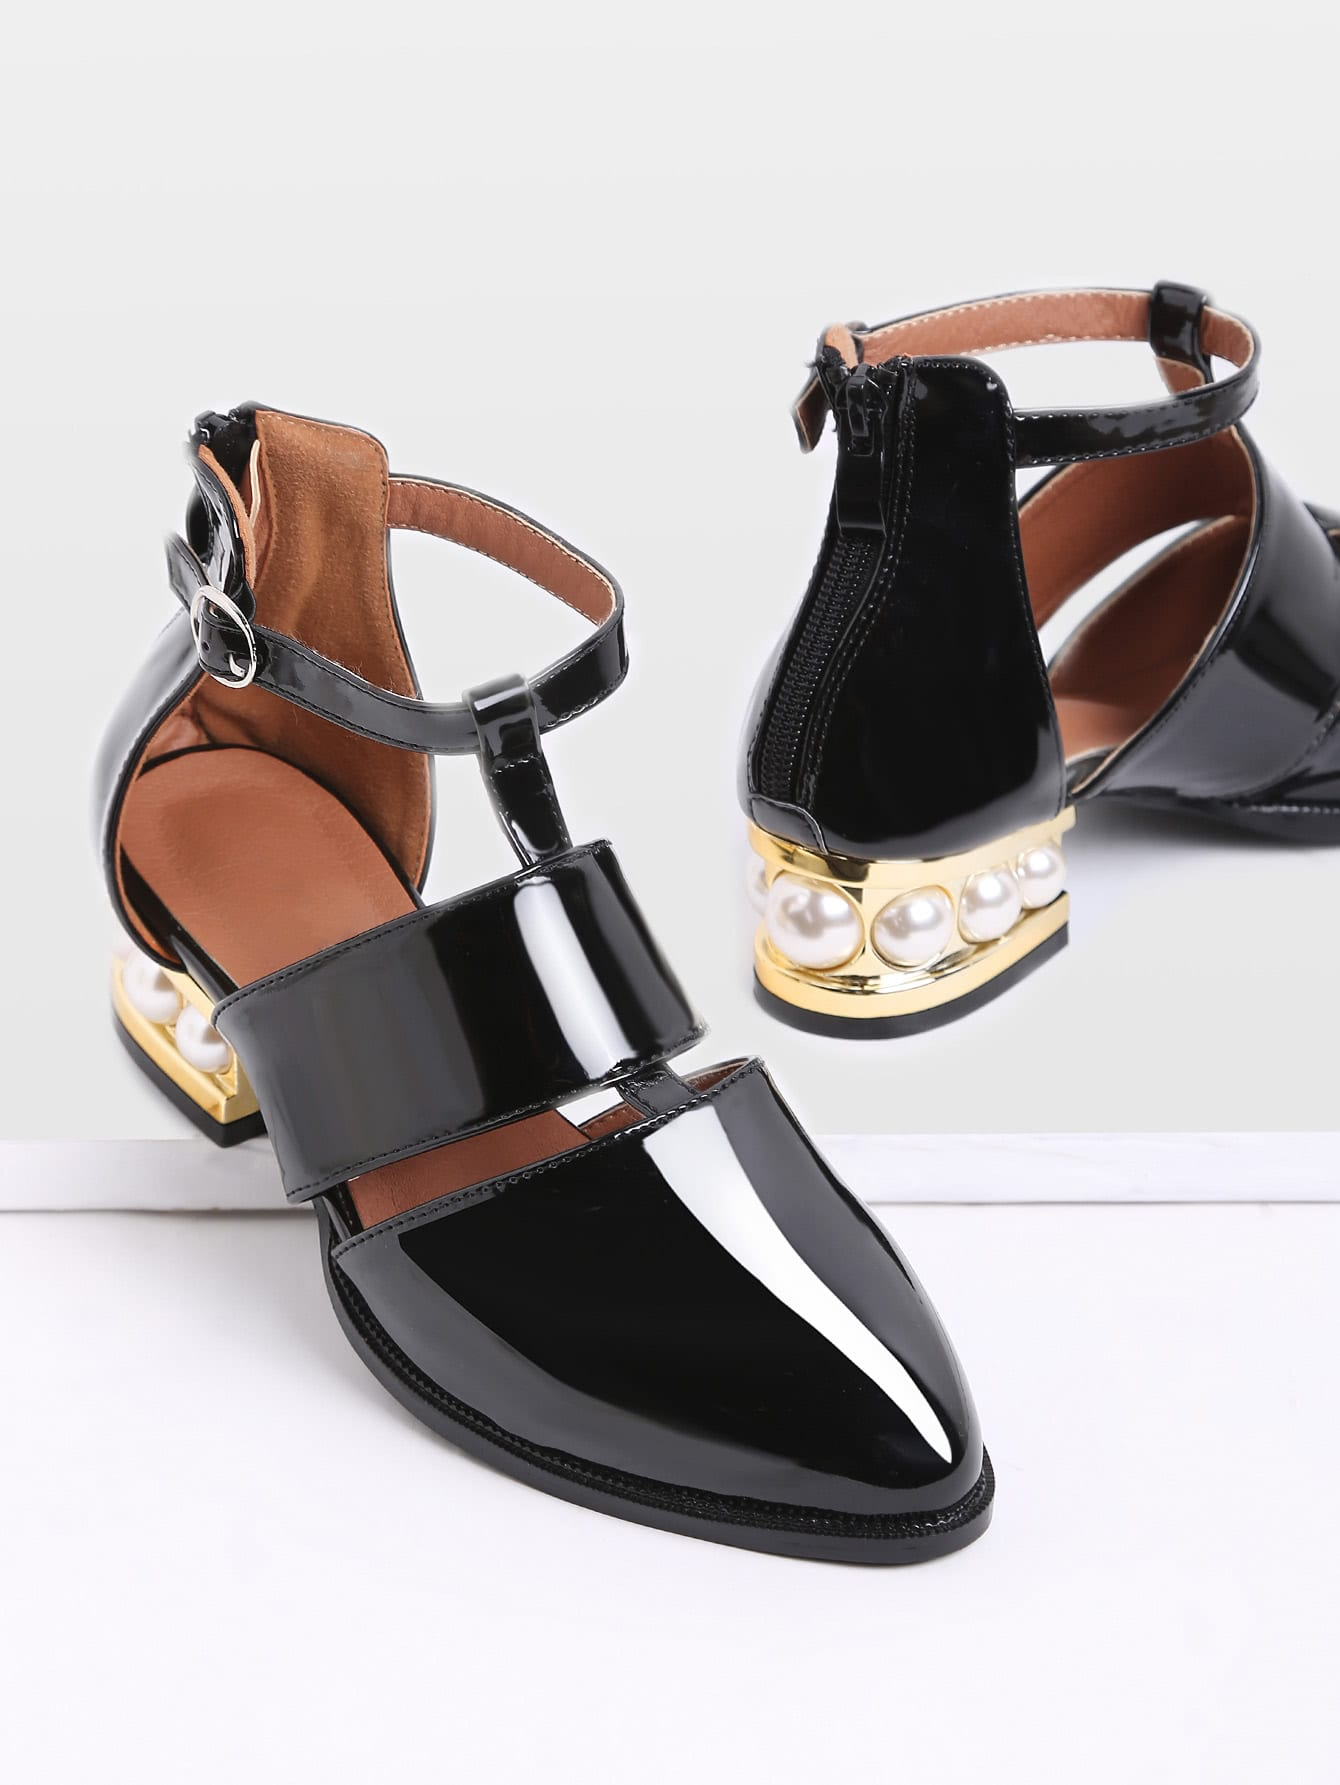 Black Pearl Design Back Zipper Patent Leather Shoes bacia women shoes black patent leather ladies high heels shoes with bowknot thick heel pumps genuine leather lady shoes sb075